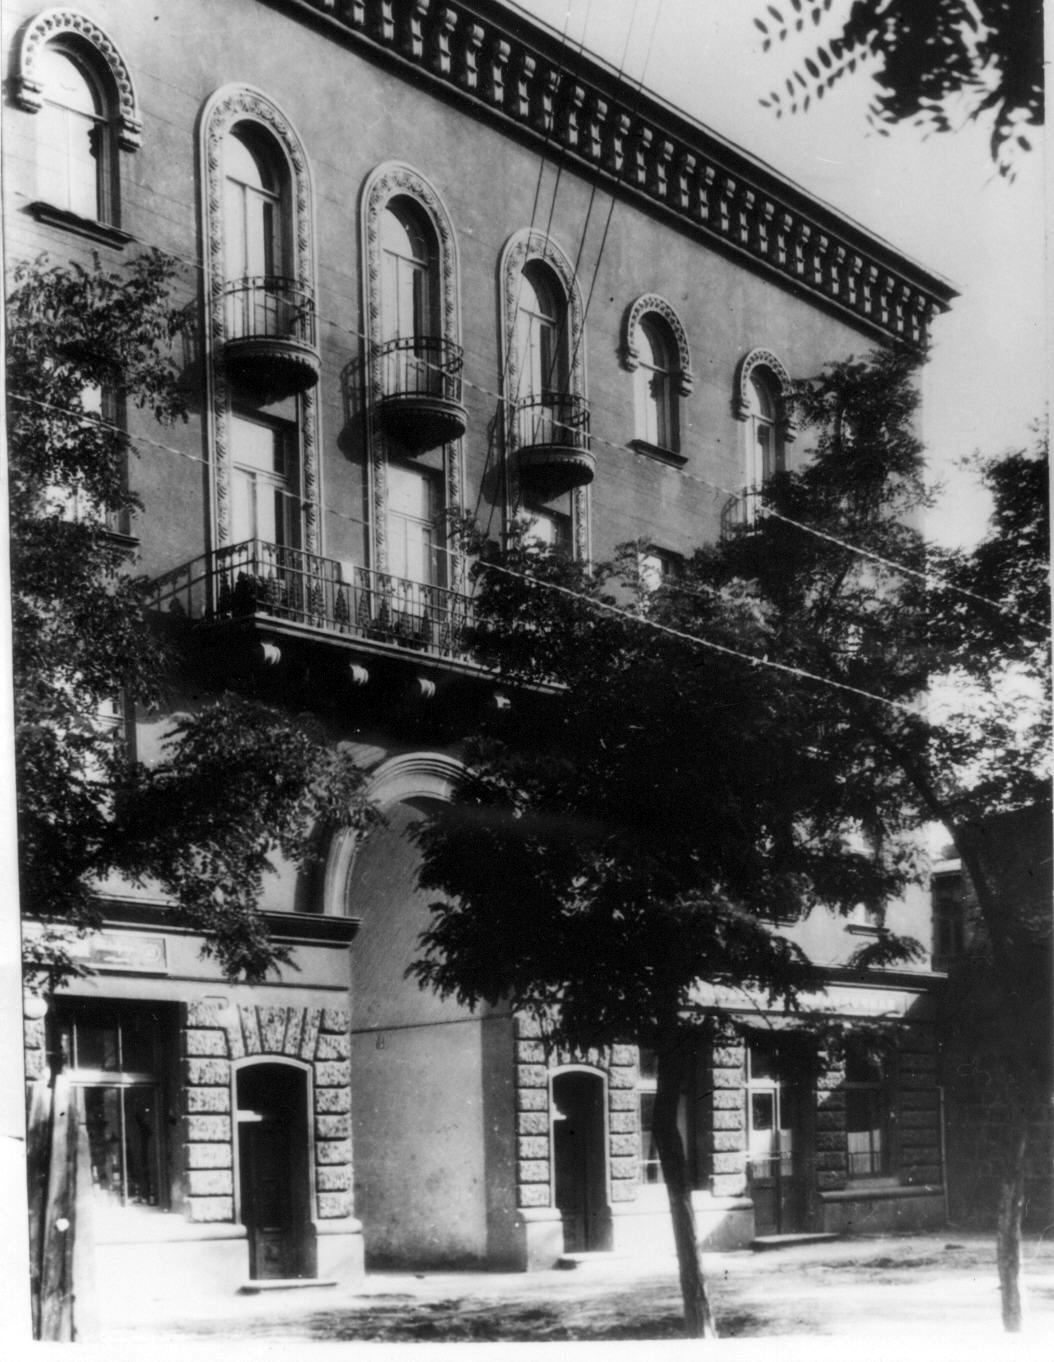 Building at Vaxushti str. Tbilisi (Family Archive)